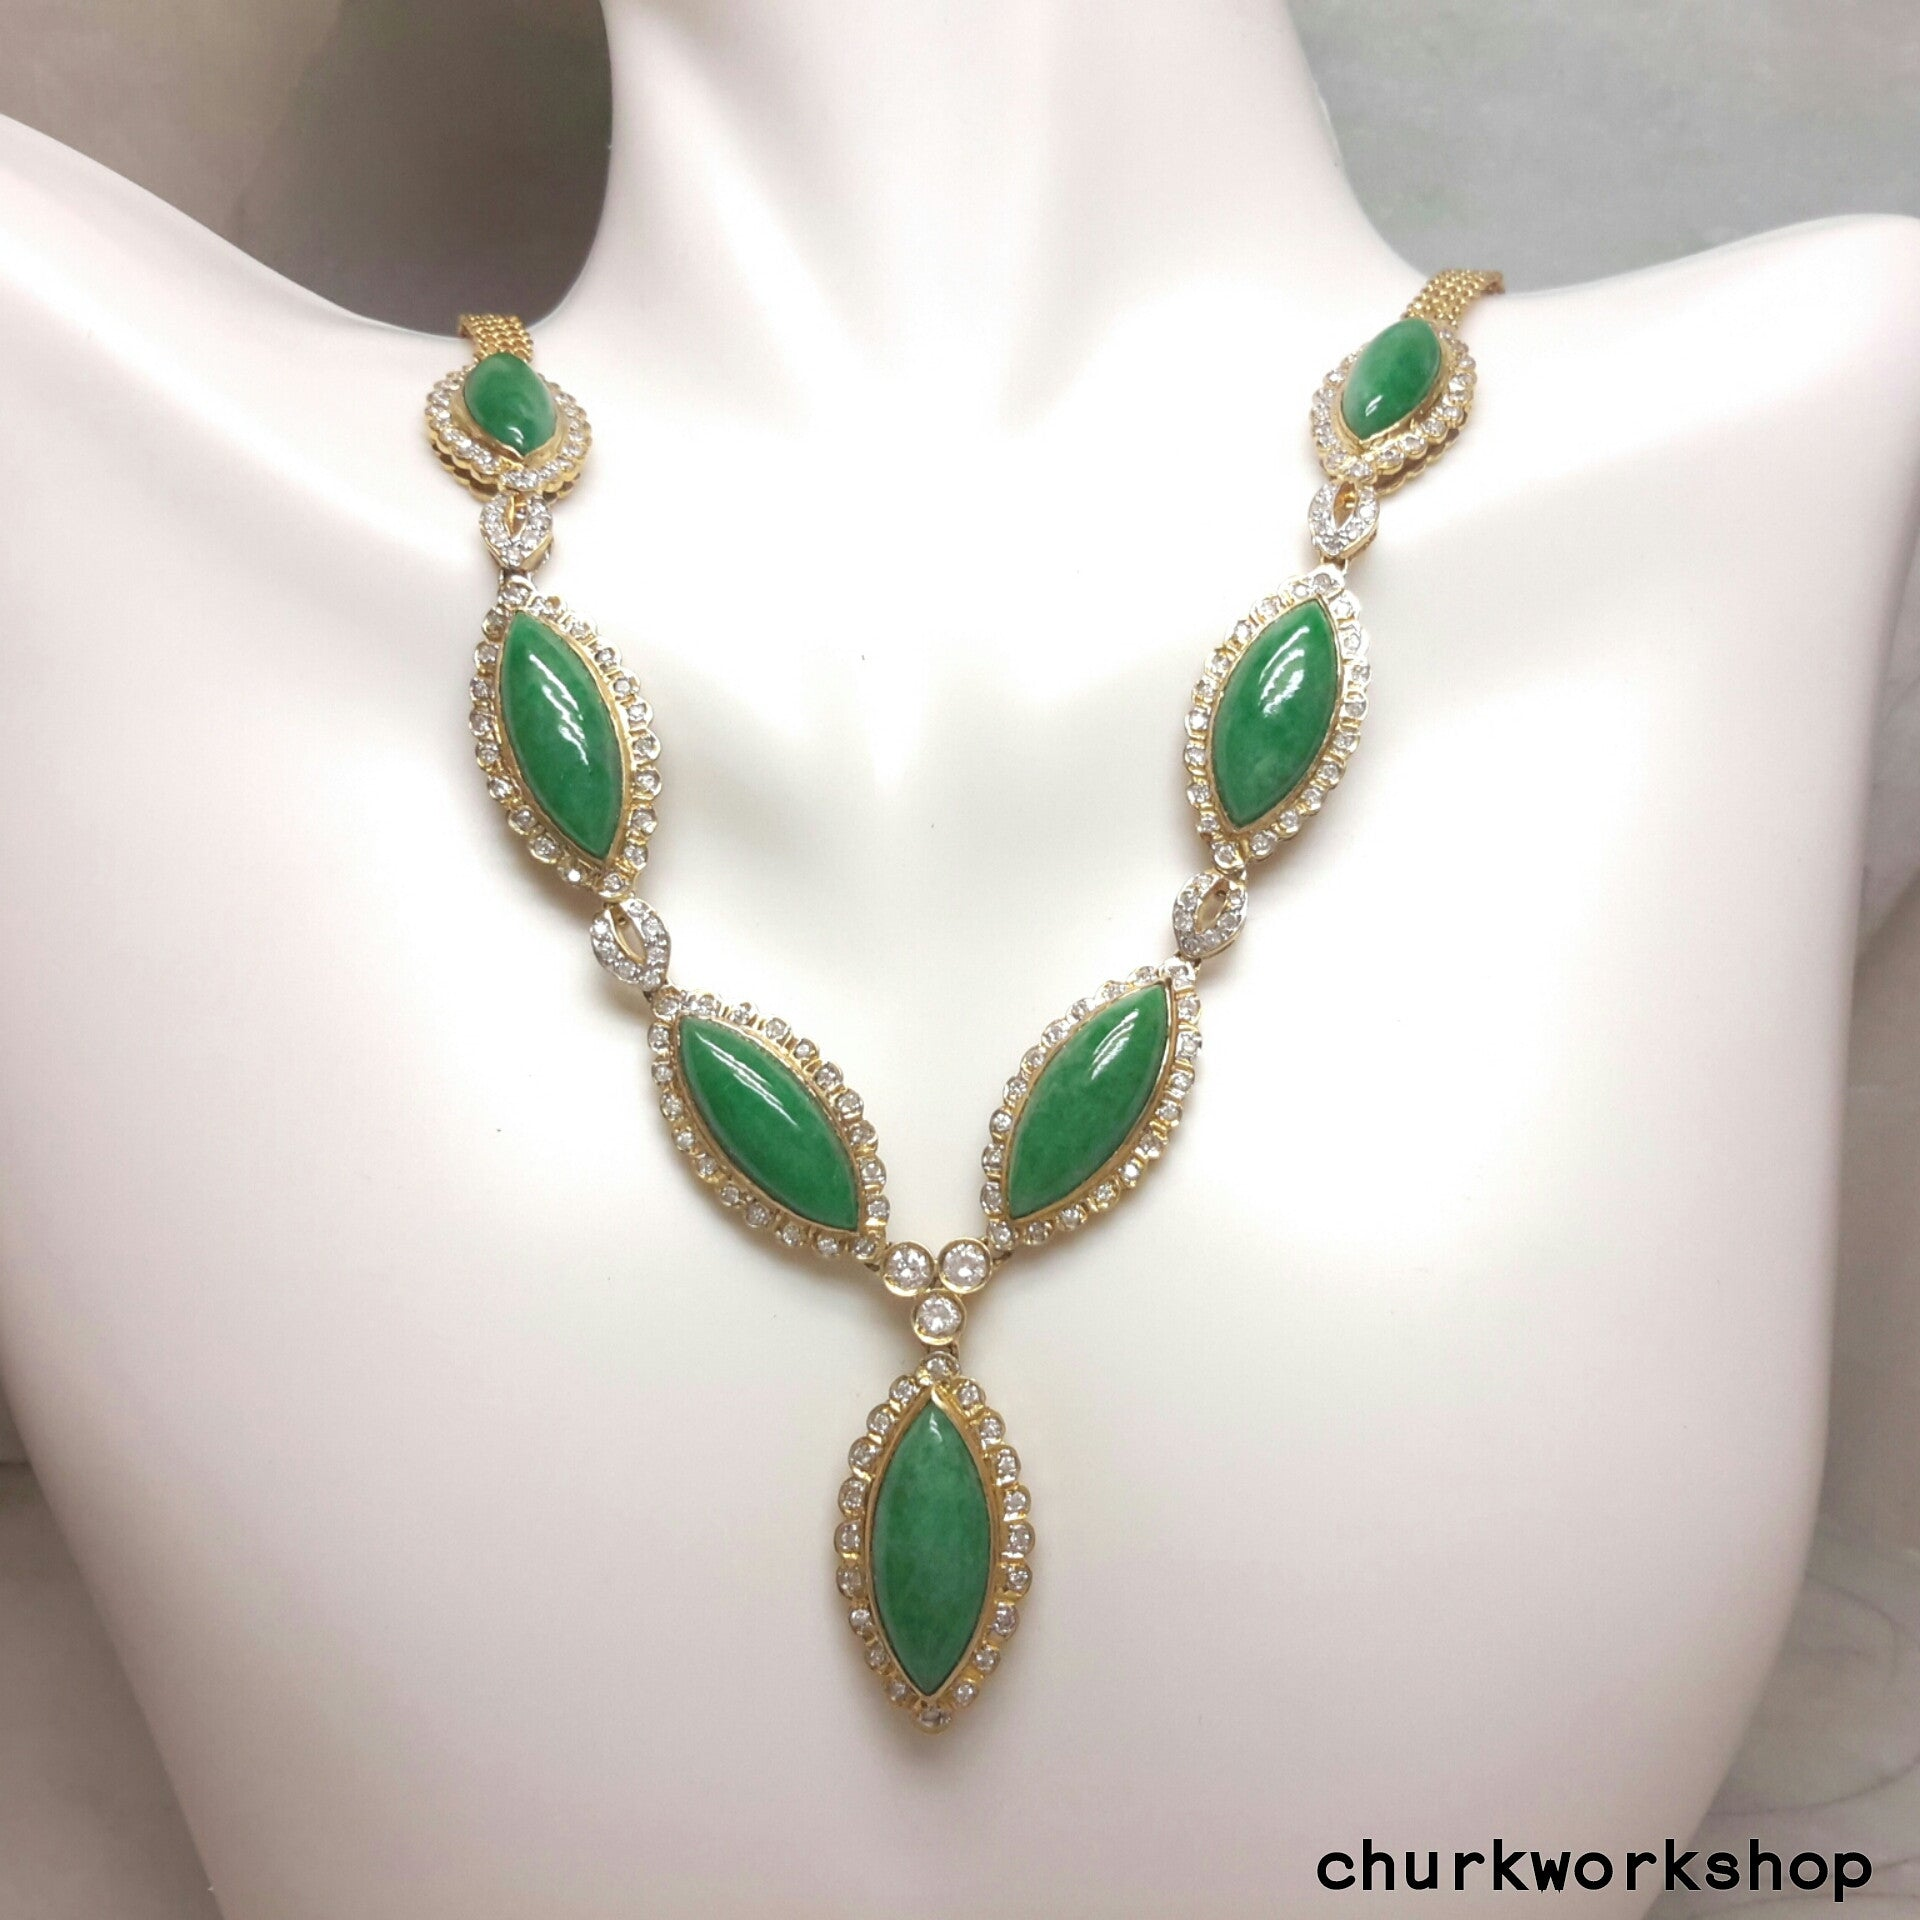 products peerless charm bead necklace jade dainty